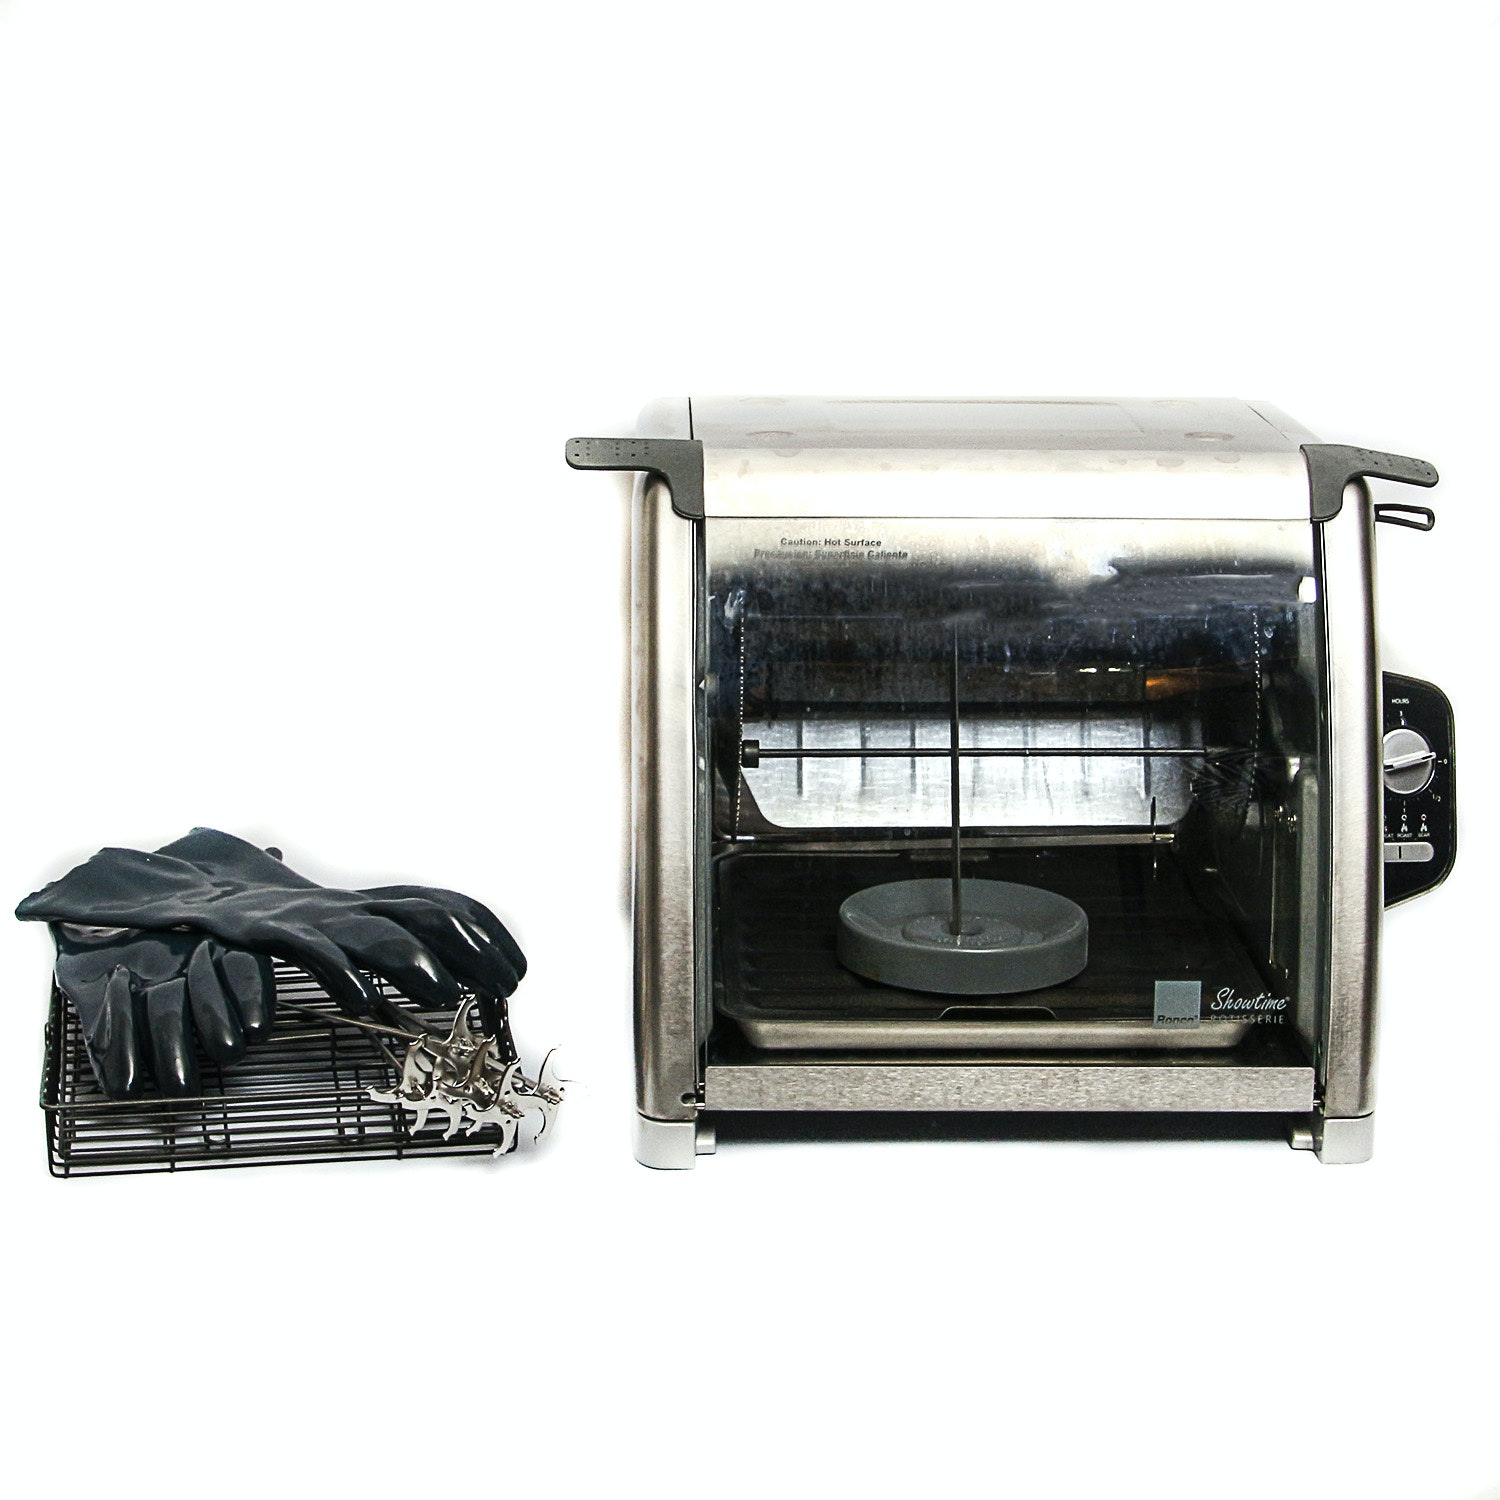 "Ronco ""Showtime"" Rotisserie"